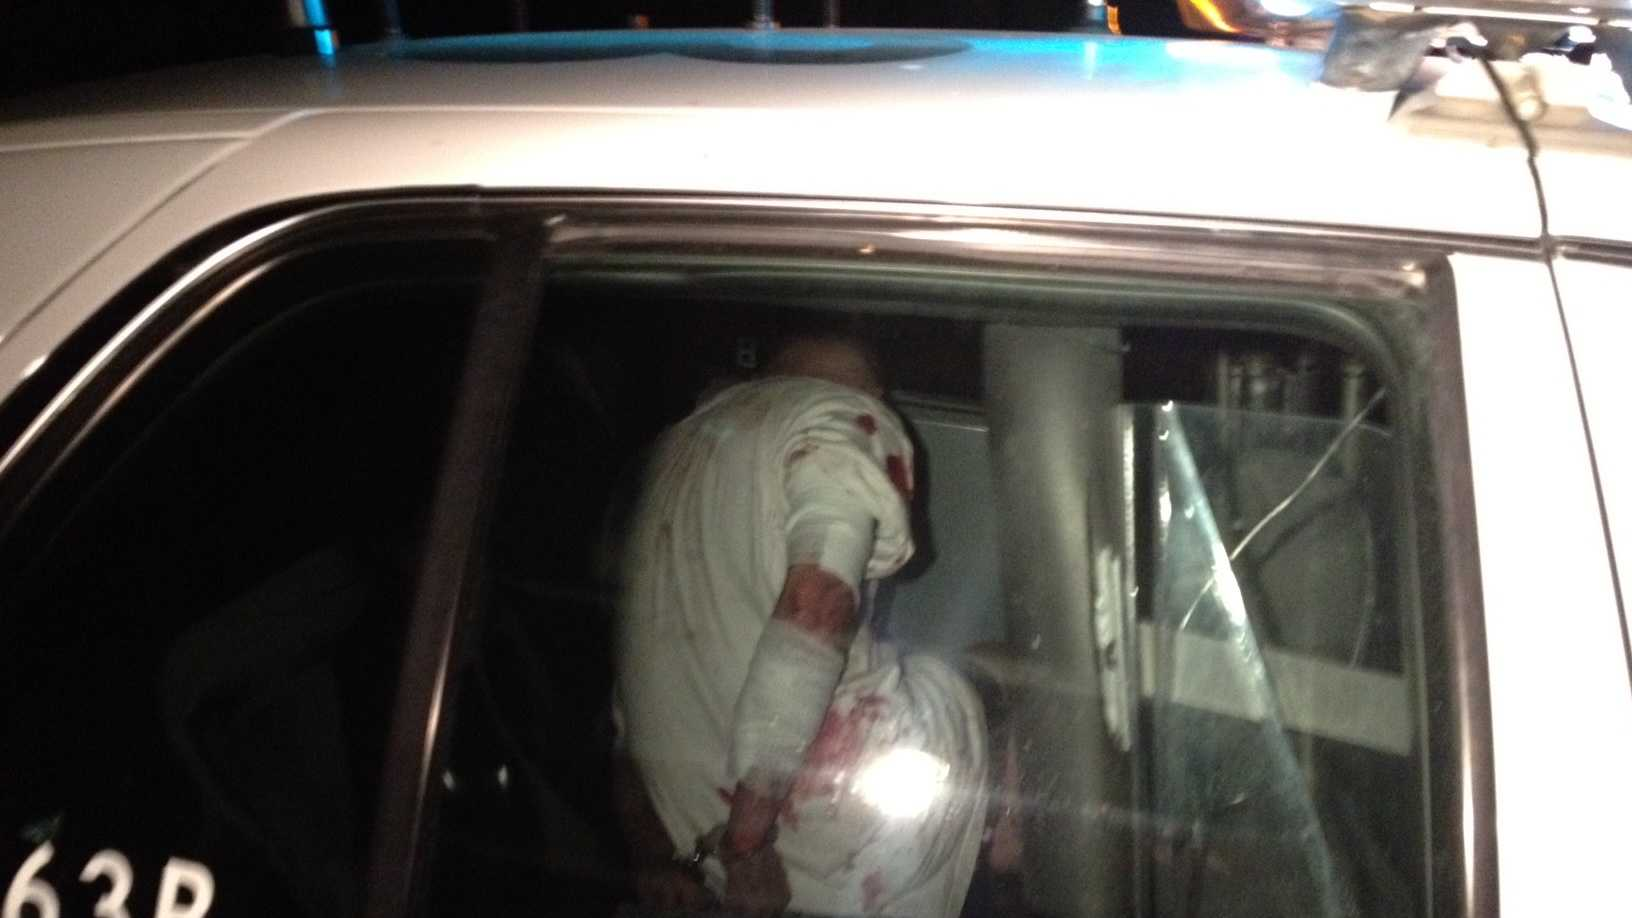 A stolen-iPad suspect in the back of a patrol car (Oct. 17, 2012).